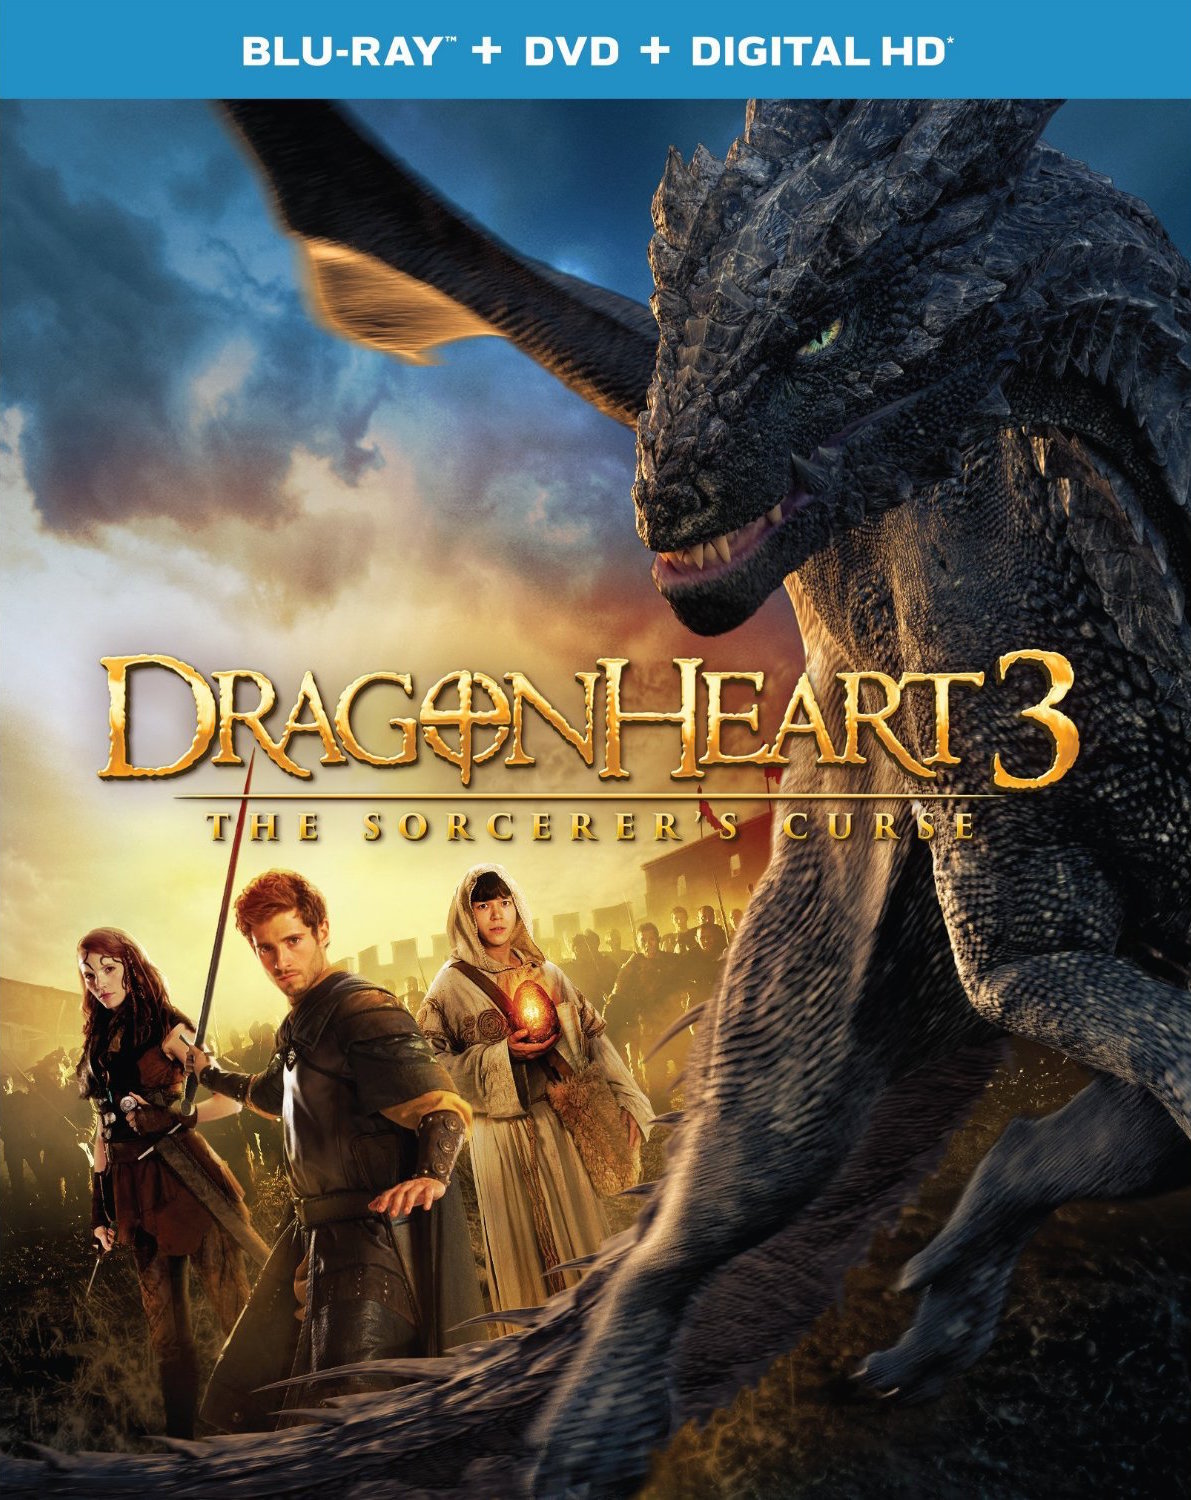 Dragon Heart 3 Blu-ray Review